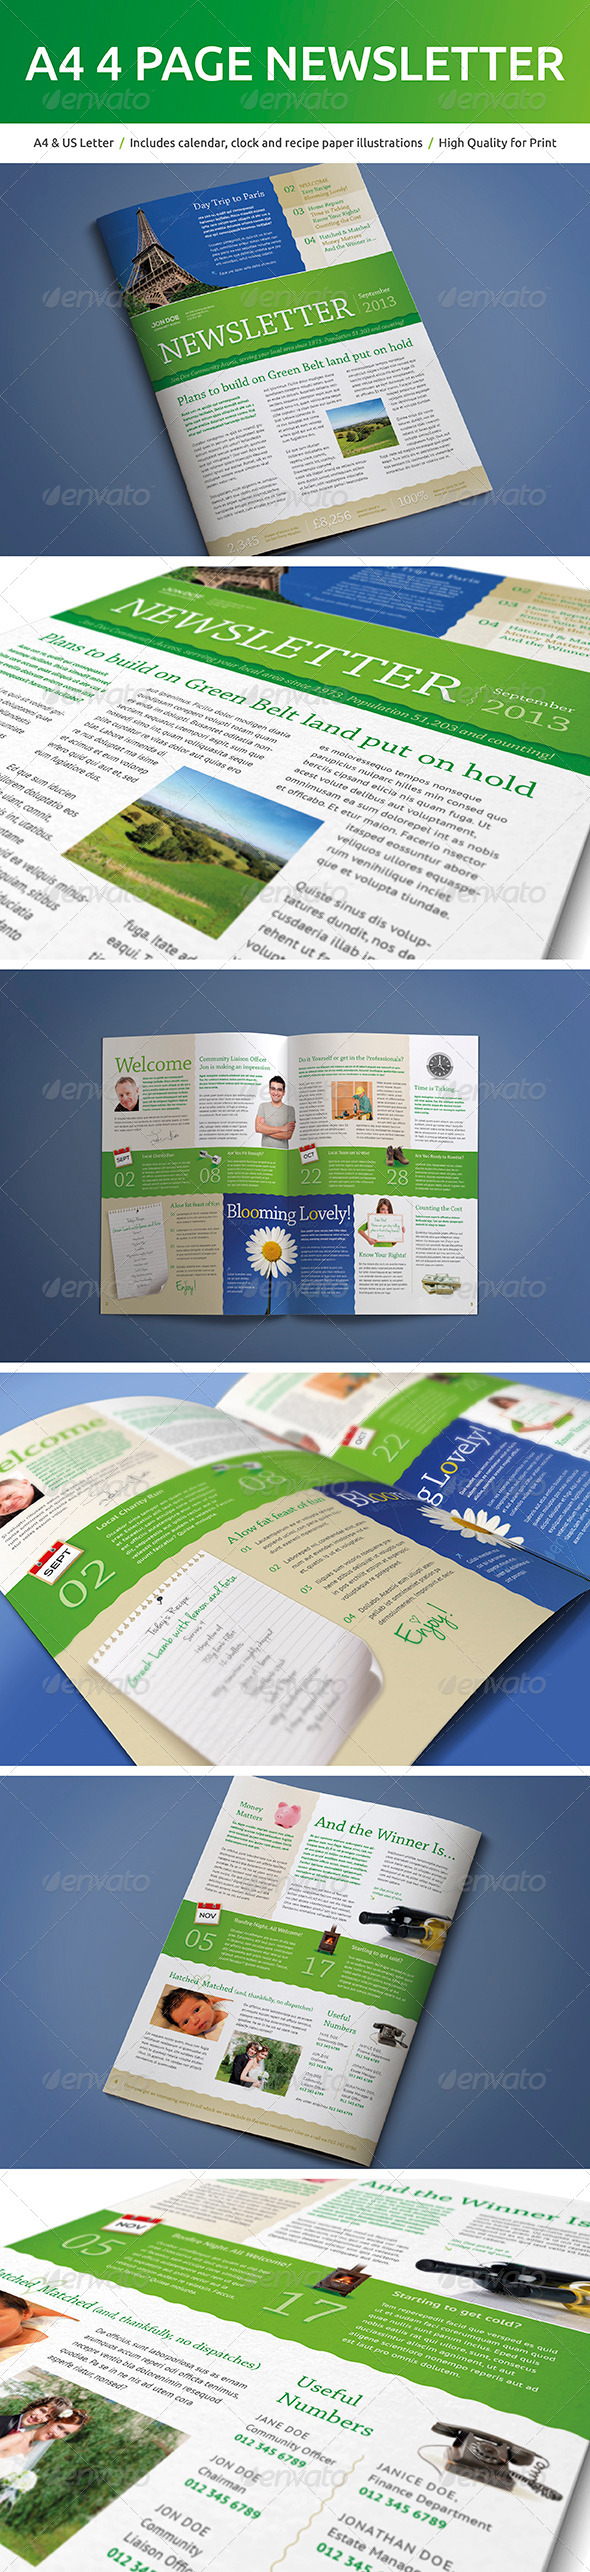 GraphicRiver A4 4 Page Newsletter 5166004